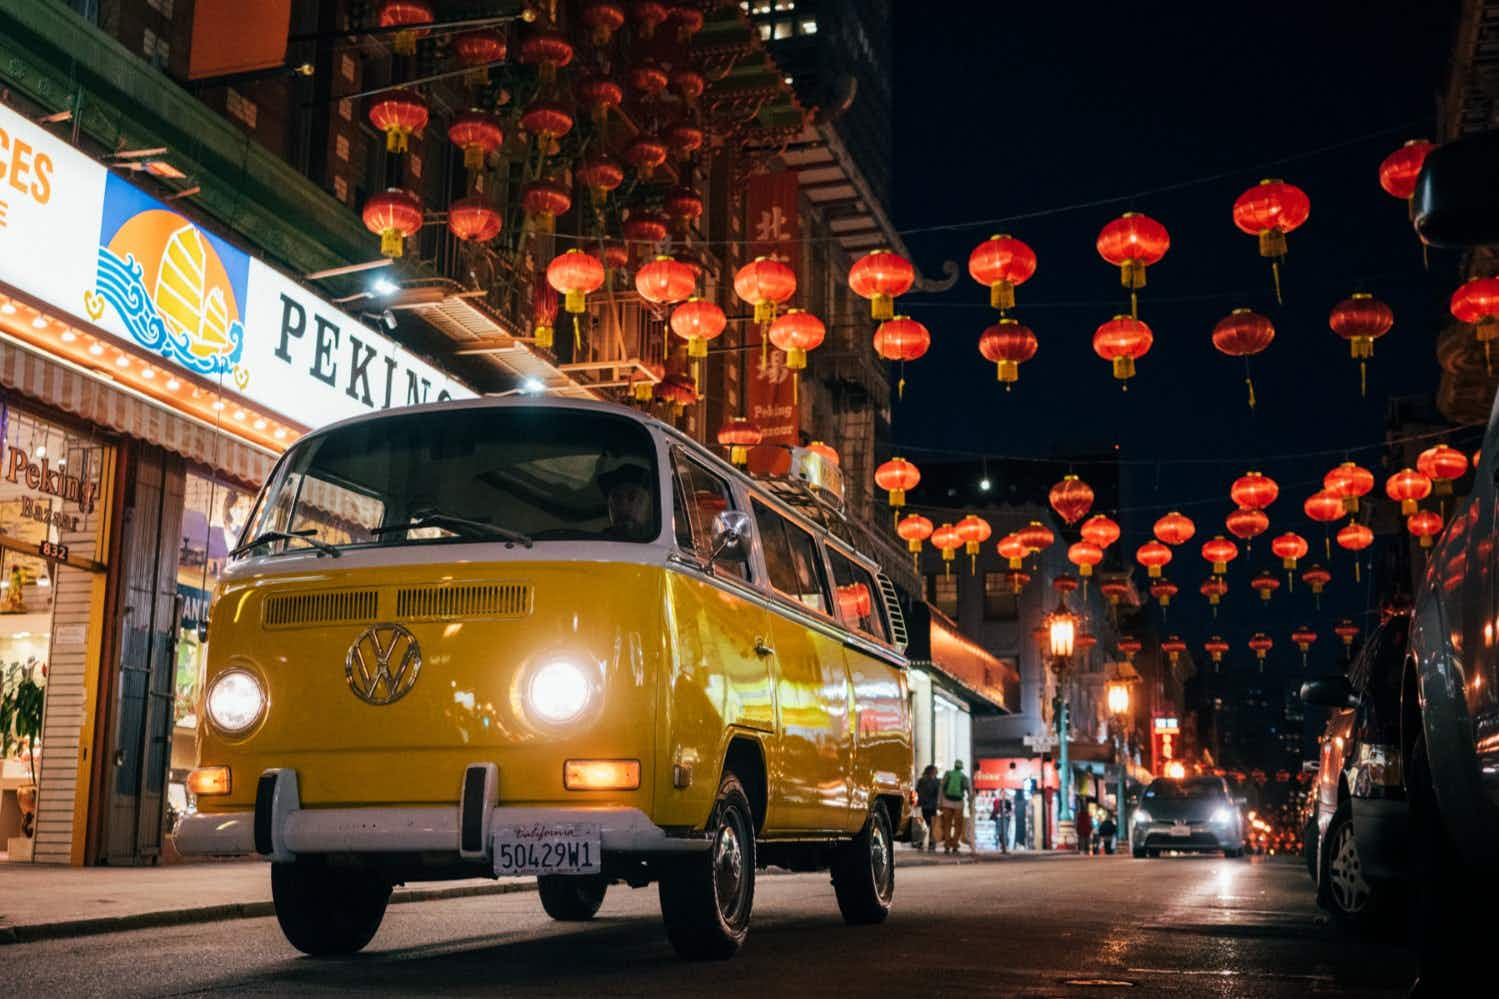 Experience San Francisco alongside a local with a night-tour in a Volkswagen camper van